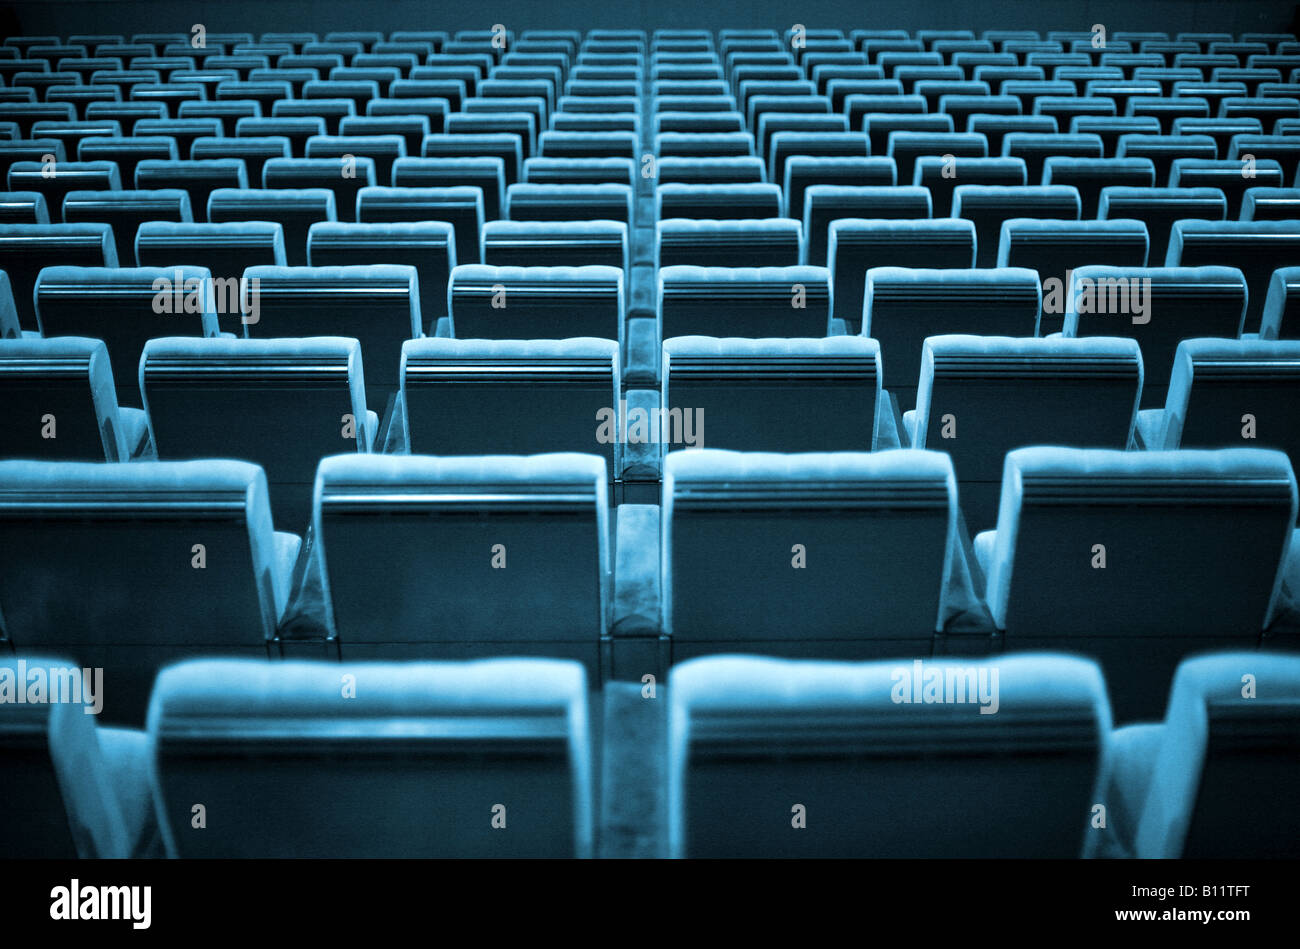 Empty chairs at cinema or theater. Blue tone. - Stock Image